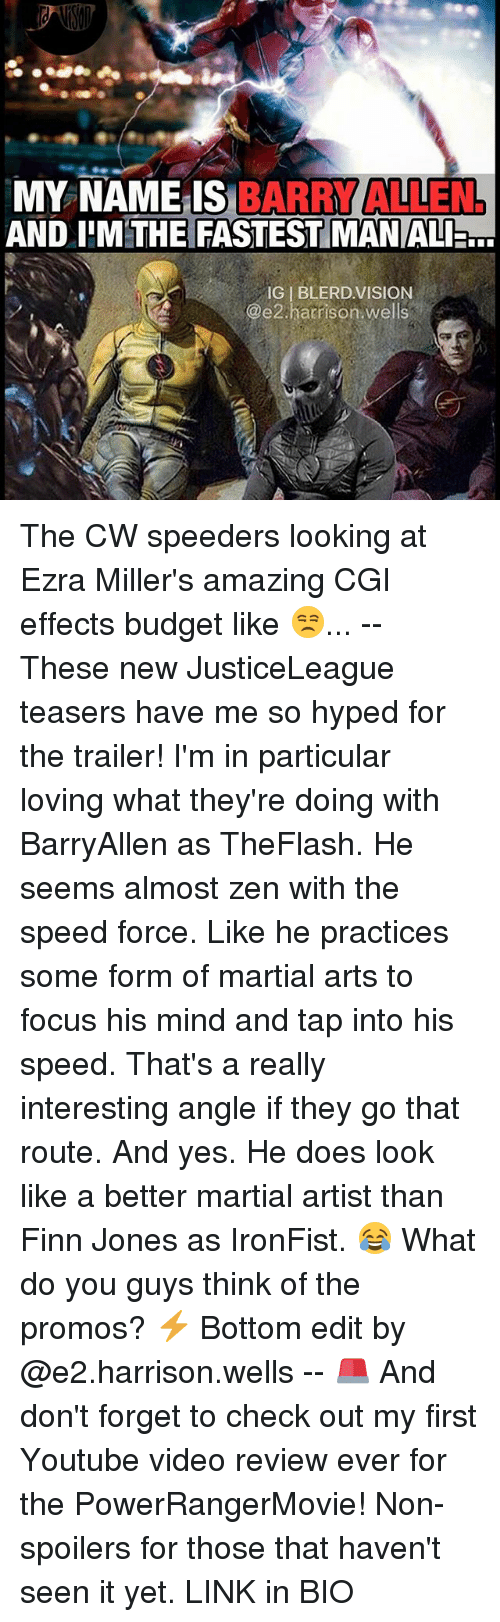 Memes, 🤖, and Cgi: MY NAME IS  BARRY ALLEN  AND IIM THE FASTESTIMANALI.G  IGIBLERD. VISION  @e2 harrison wells The CW speeders looking at Ezra Miller's amazing CGI effects budget like 😒... -- These new JusticeLeague teasers have me so hyped for the trailer! I'm in particular loving what they're doing with BarryAllen as TheFlash. He seems almost zen with the speed force. Like he practices some form of martial arts to focus his mind and tap into his speed. That's a really interesting angle if they go that route. And yes. He does look like a better martial artist than Finn Jones as IronFist. 😂 What do you guys think of the promos? ⚡️ Bottom edit by @e2.harrison.wells -- 🚨 And don't forget to check out my first Youtube video review ever for the PowerRangerMovie! Non-spoilers for those that haven't seen it yet. LINK in BIO